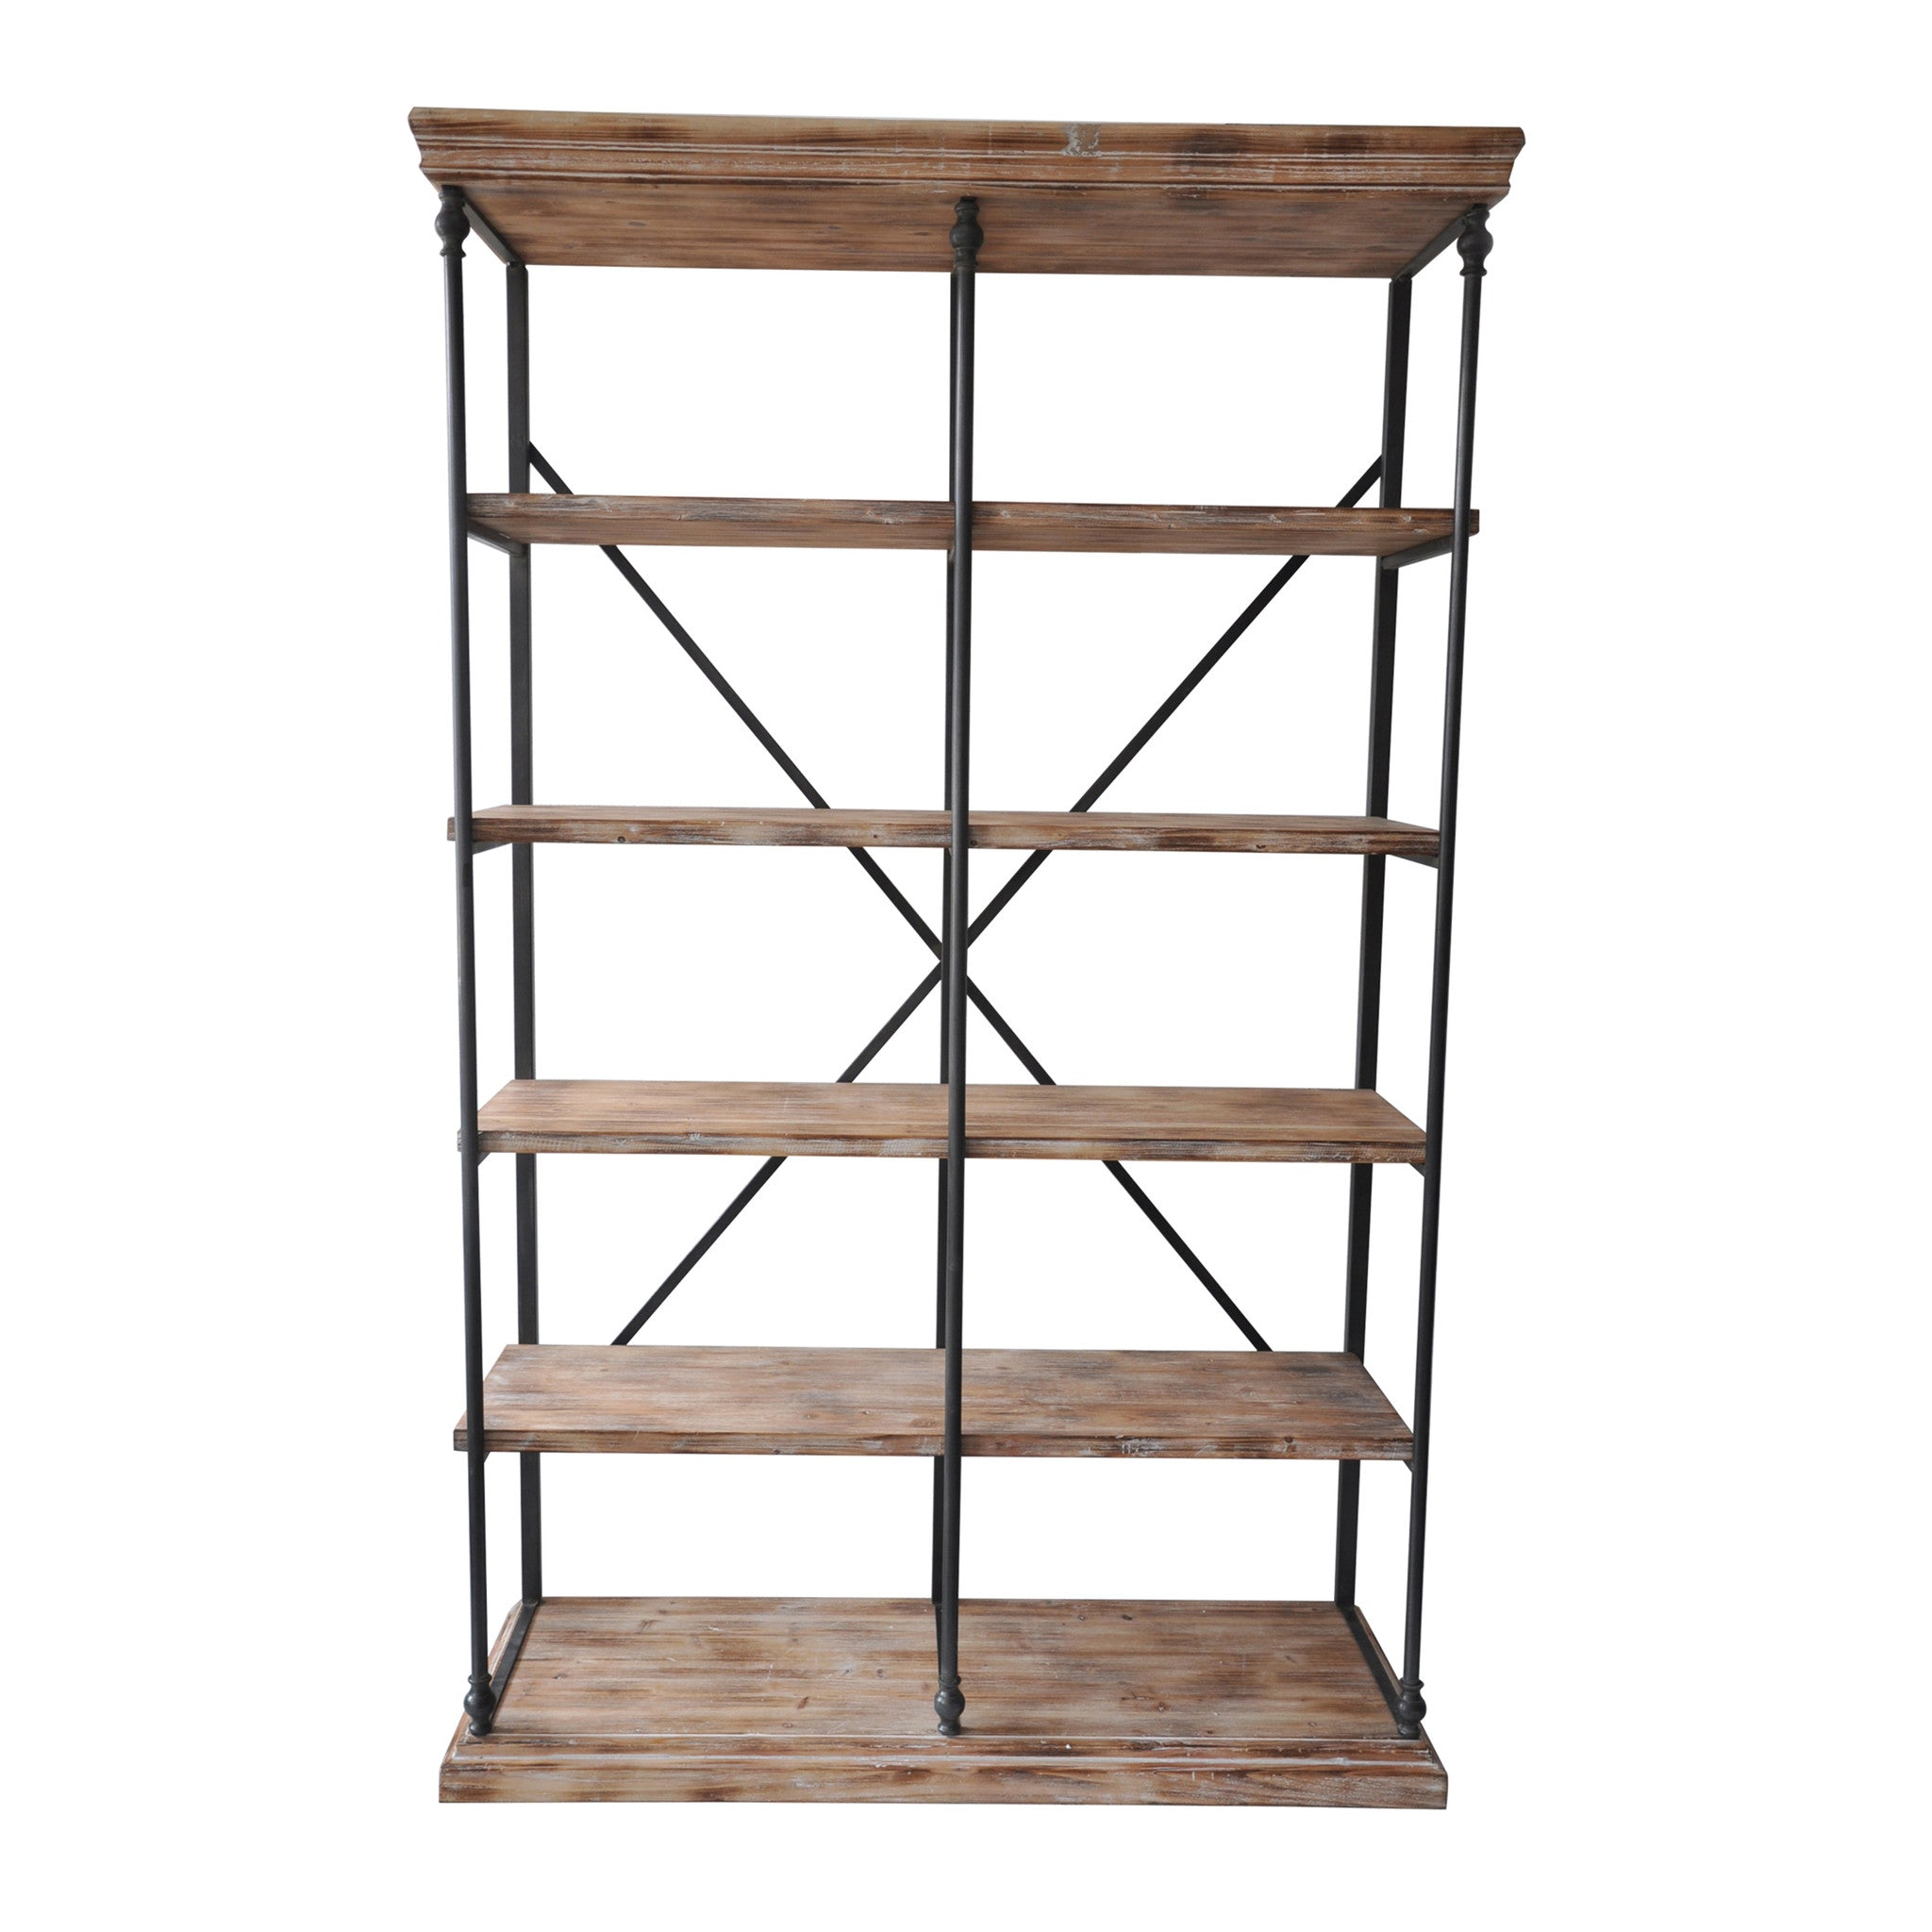 acton designscom bookcase and com hand designs custommade wood by bookshelf metal gbc custom made